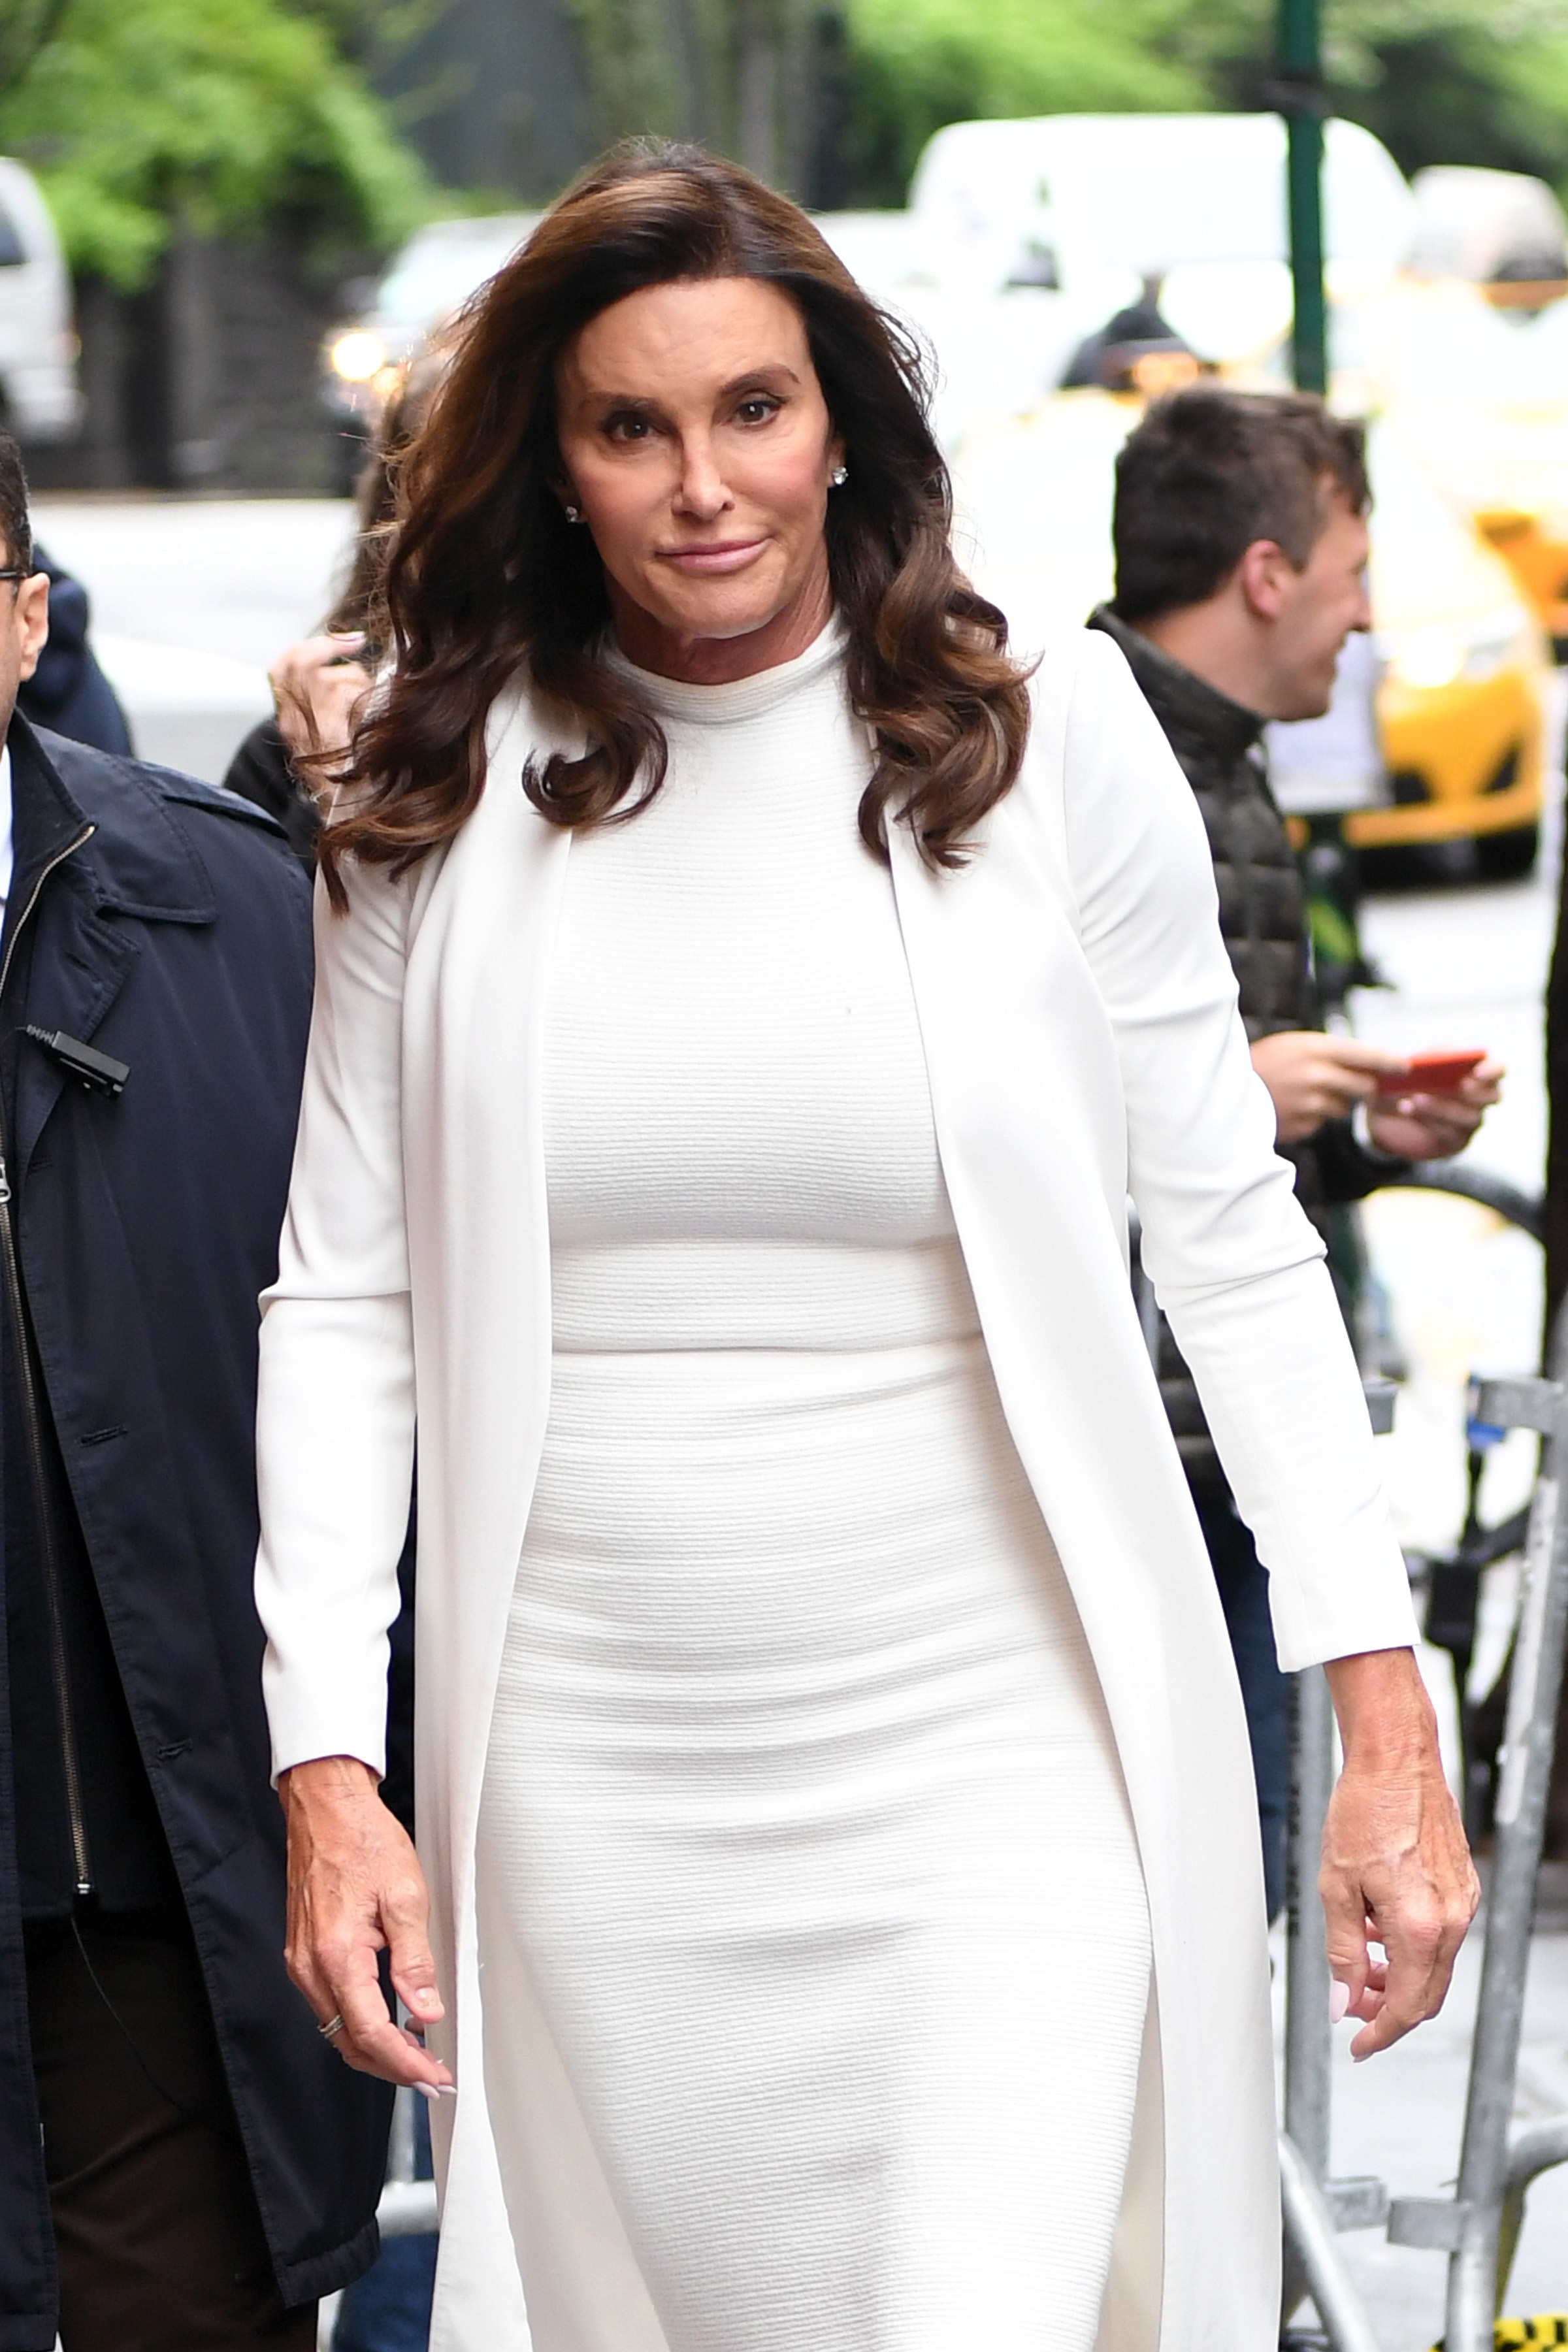 Caitlyn Jenner arrives at ABC Studios in New York City on April 26, 2017.